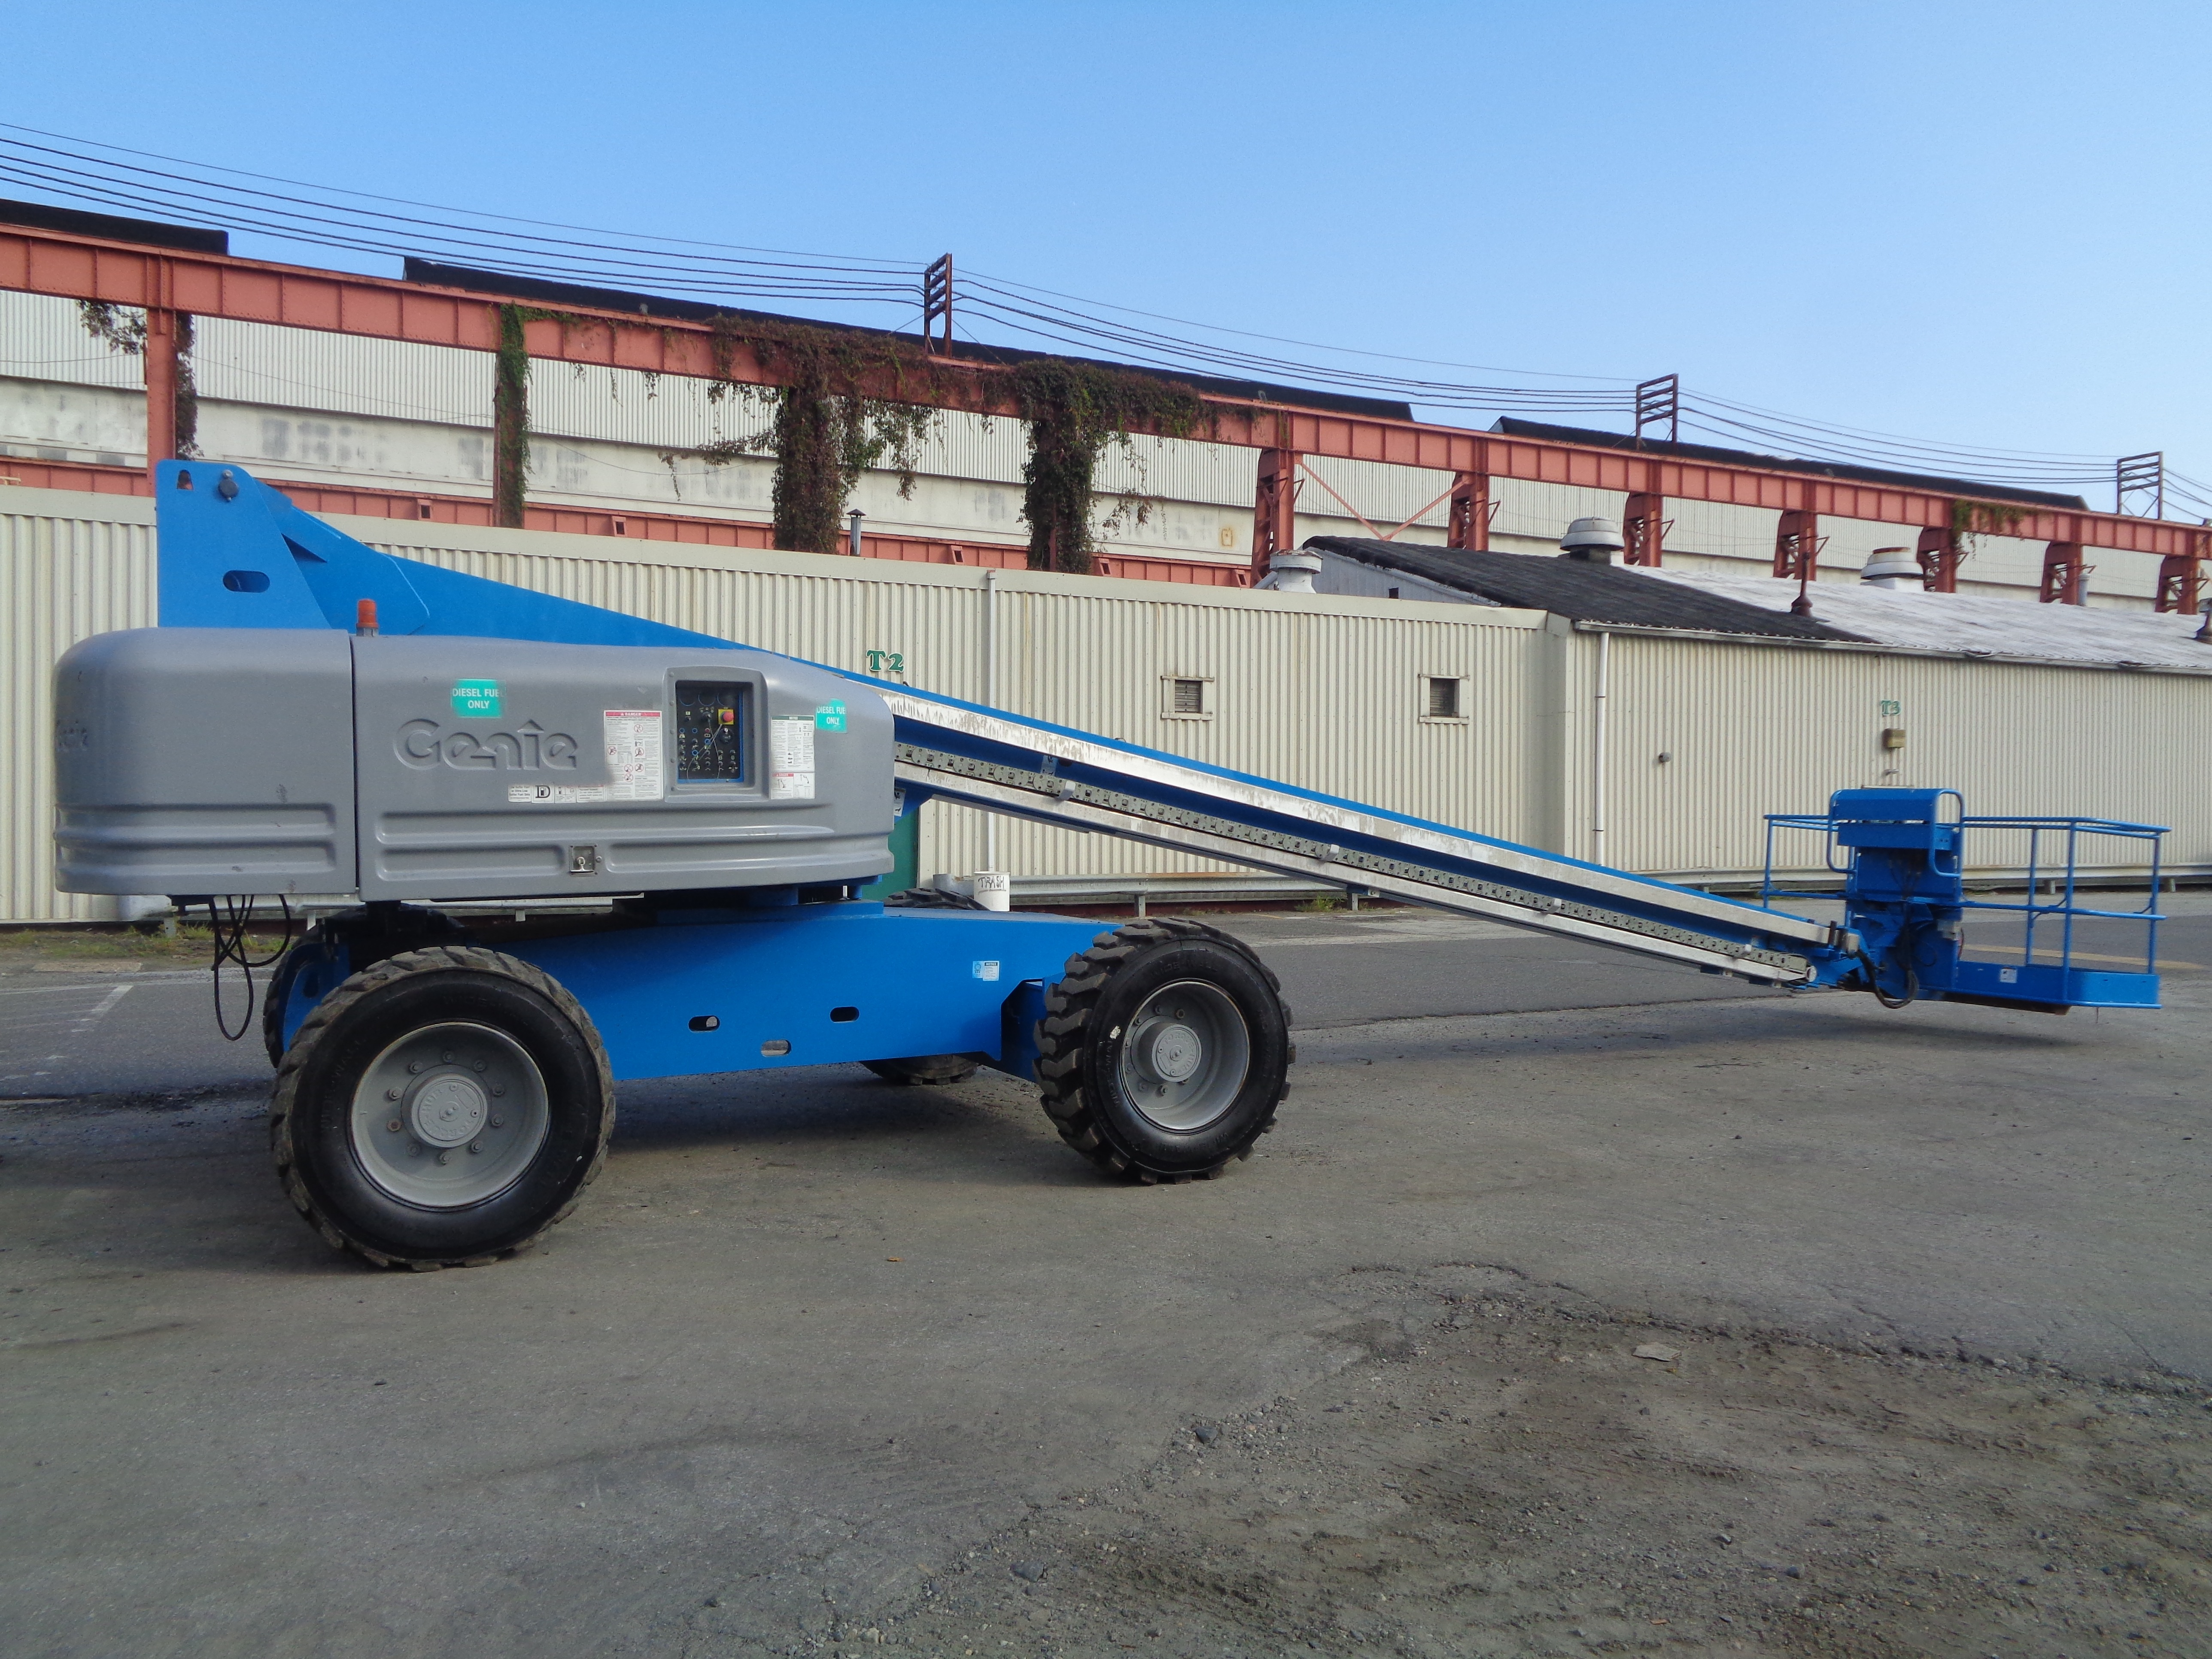 Genie S80 80ft Boom Lift - Image 8 of 22